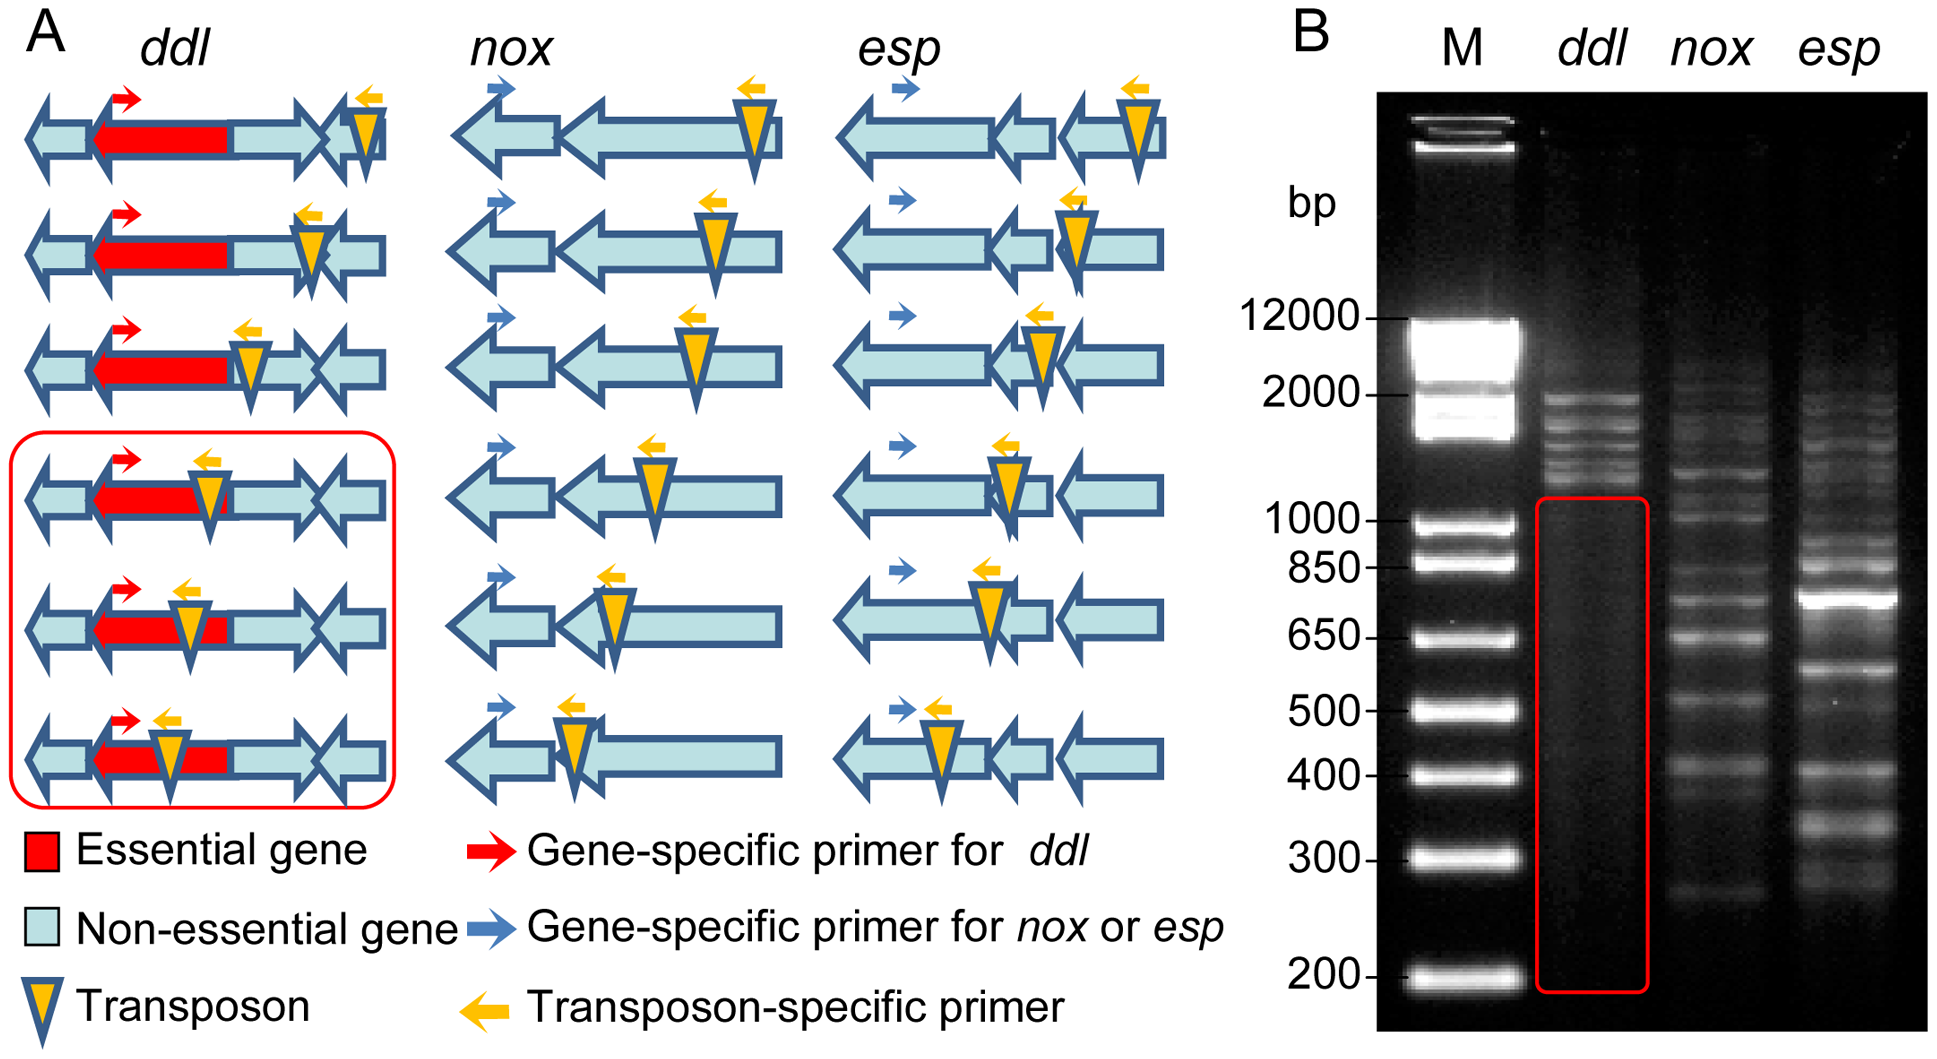 Footprinting analysis of the transposon mutant library.